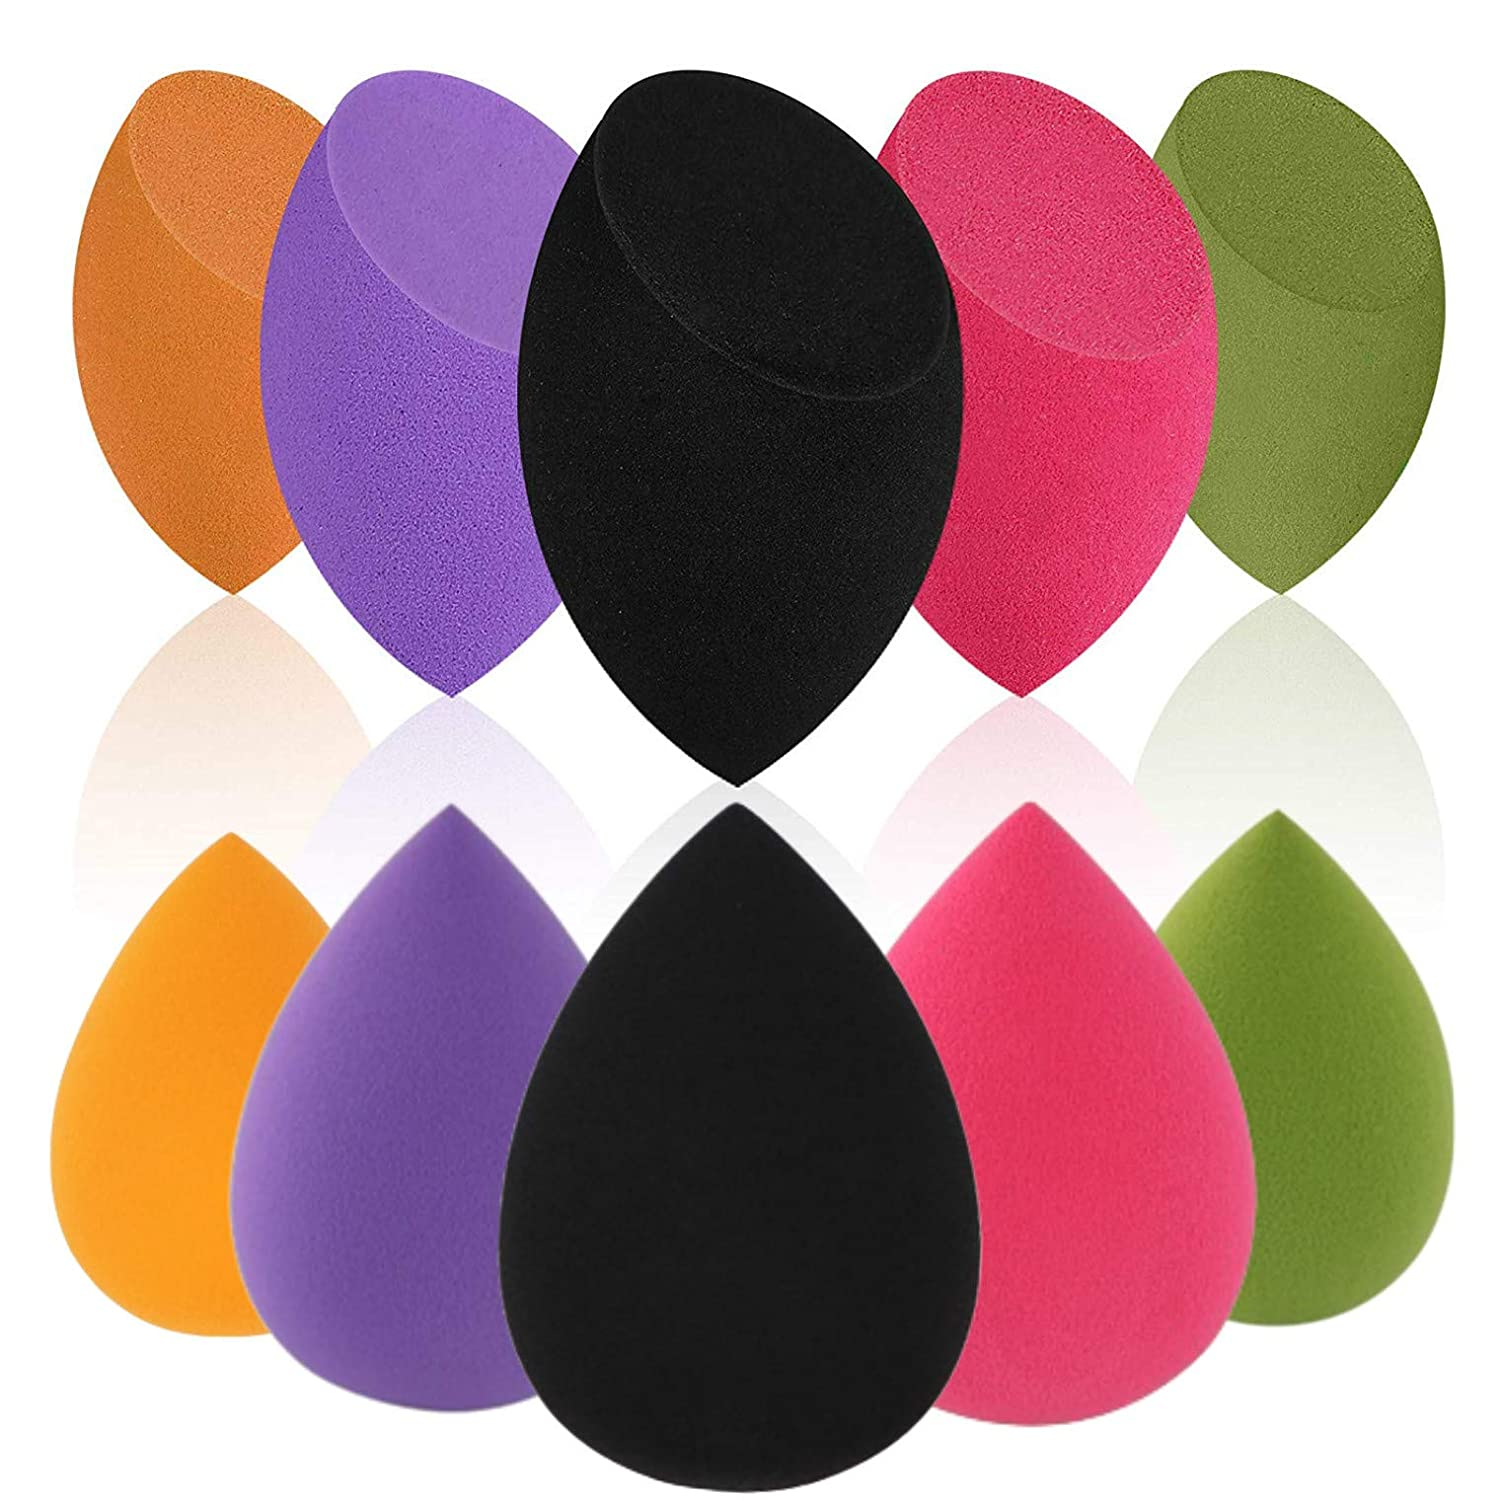 10 Pcs Beauty Makeup Sponge Blender Set Latex Free Foundation Blending for Liquid, Cream and Powders